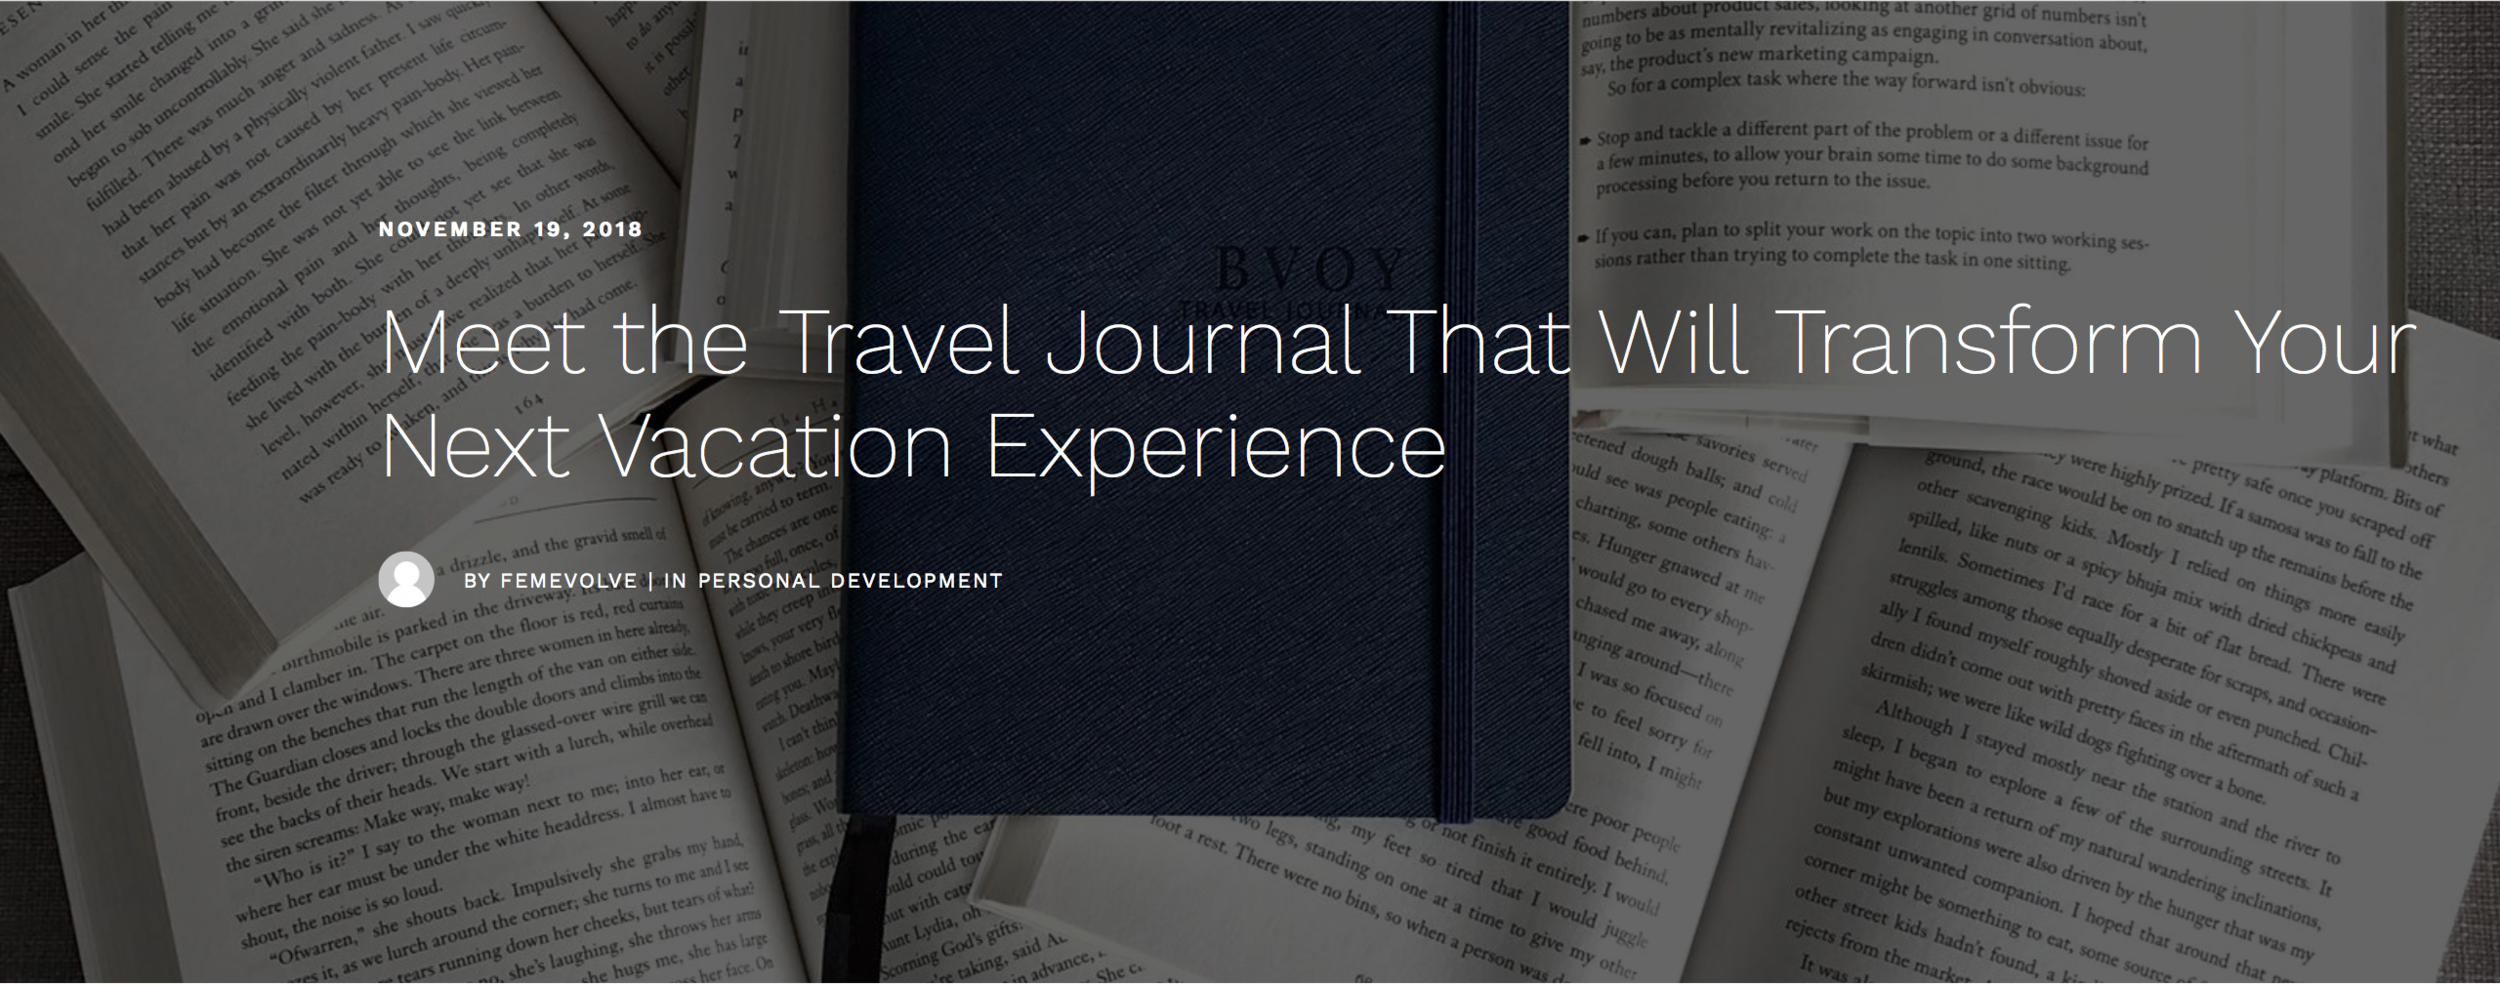 Meet the Travel Journal That Will Transform Your Next Vacation Experience